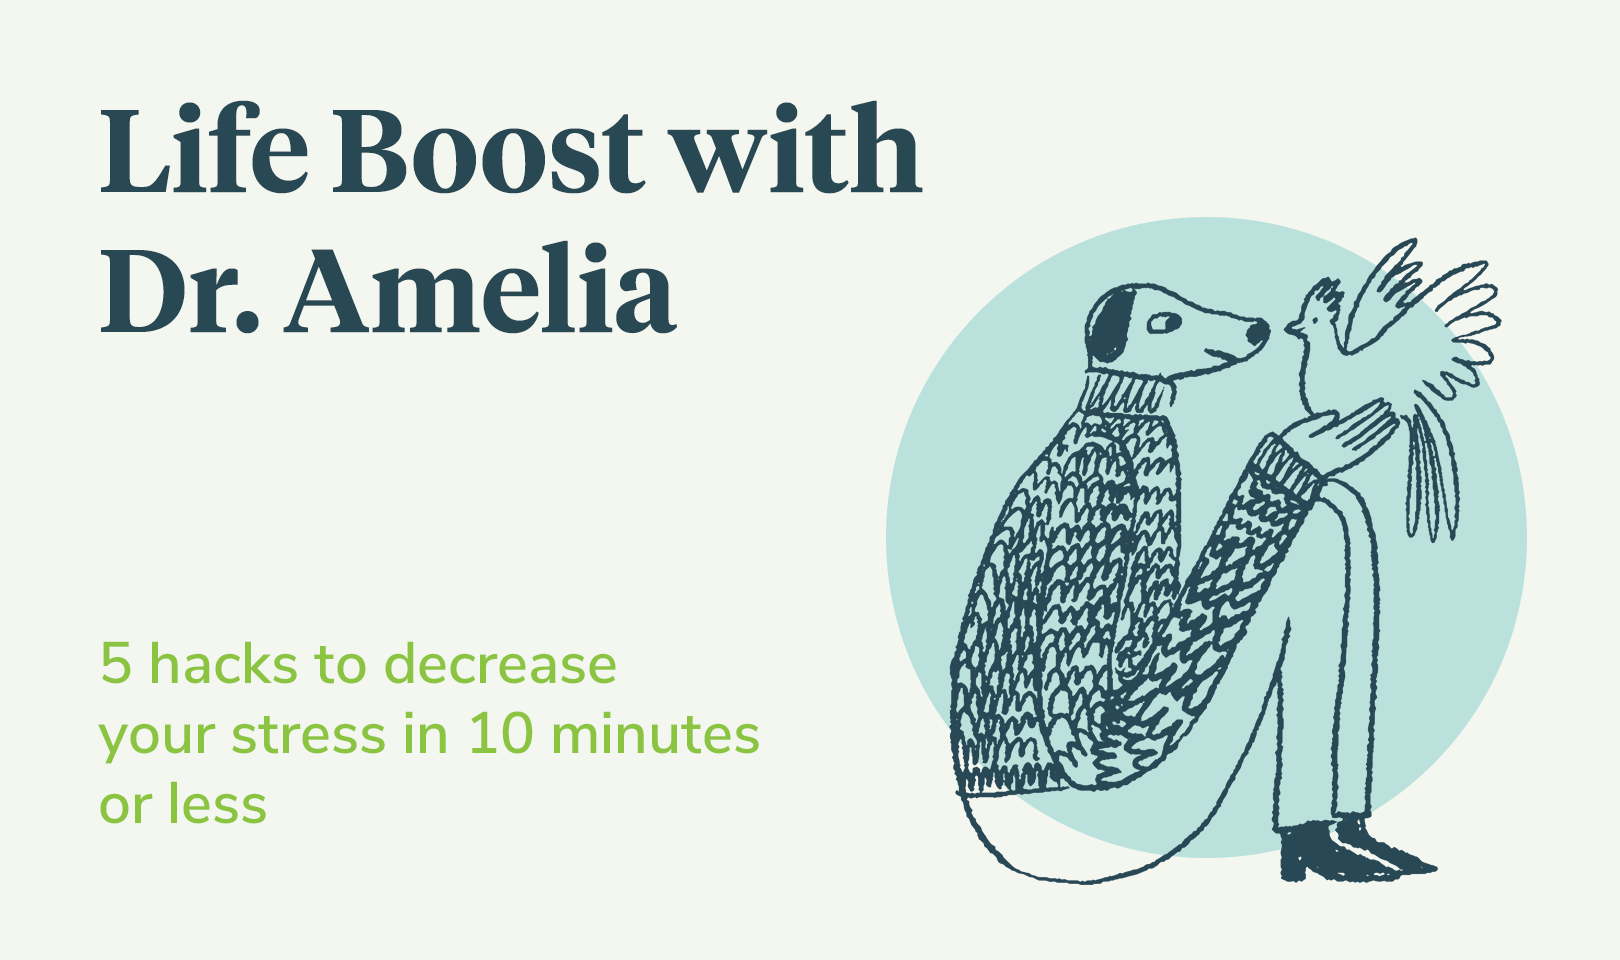 life boost with Dr. Amelia